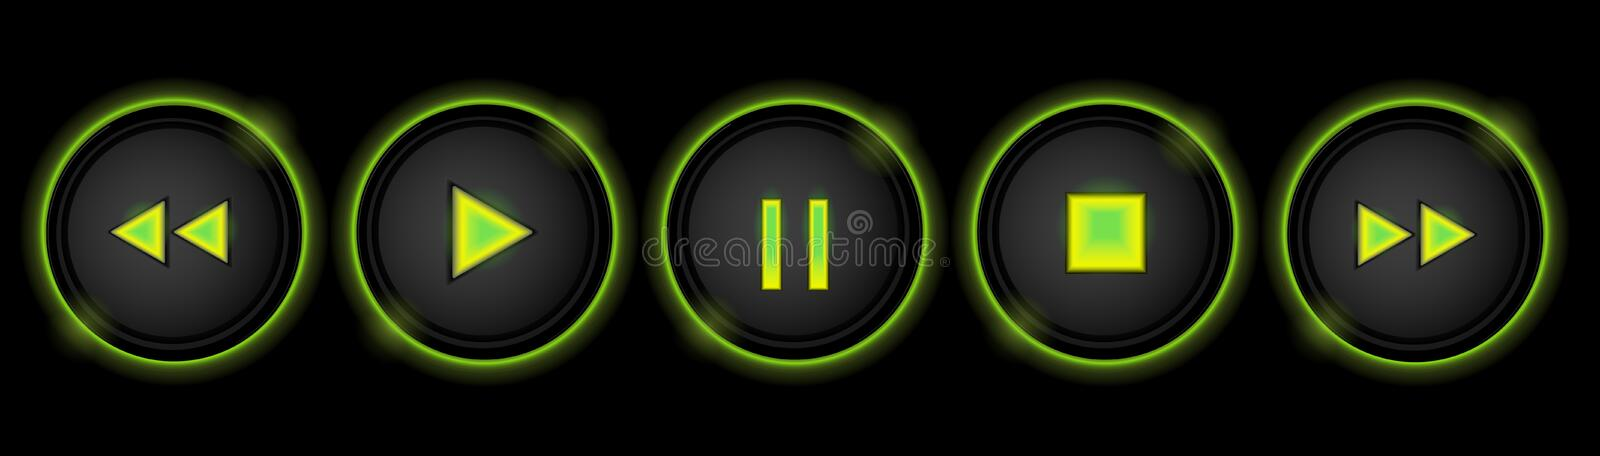 Download Neon control buttons stock vector. Illustration of green - 33459847